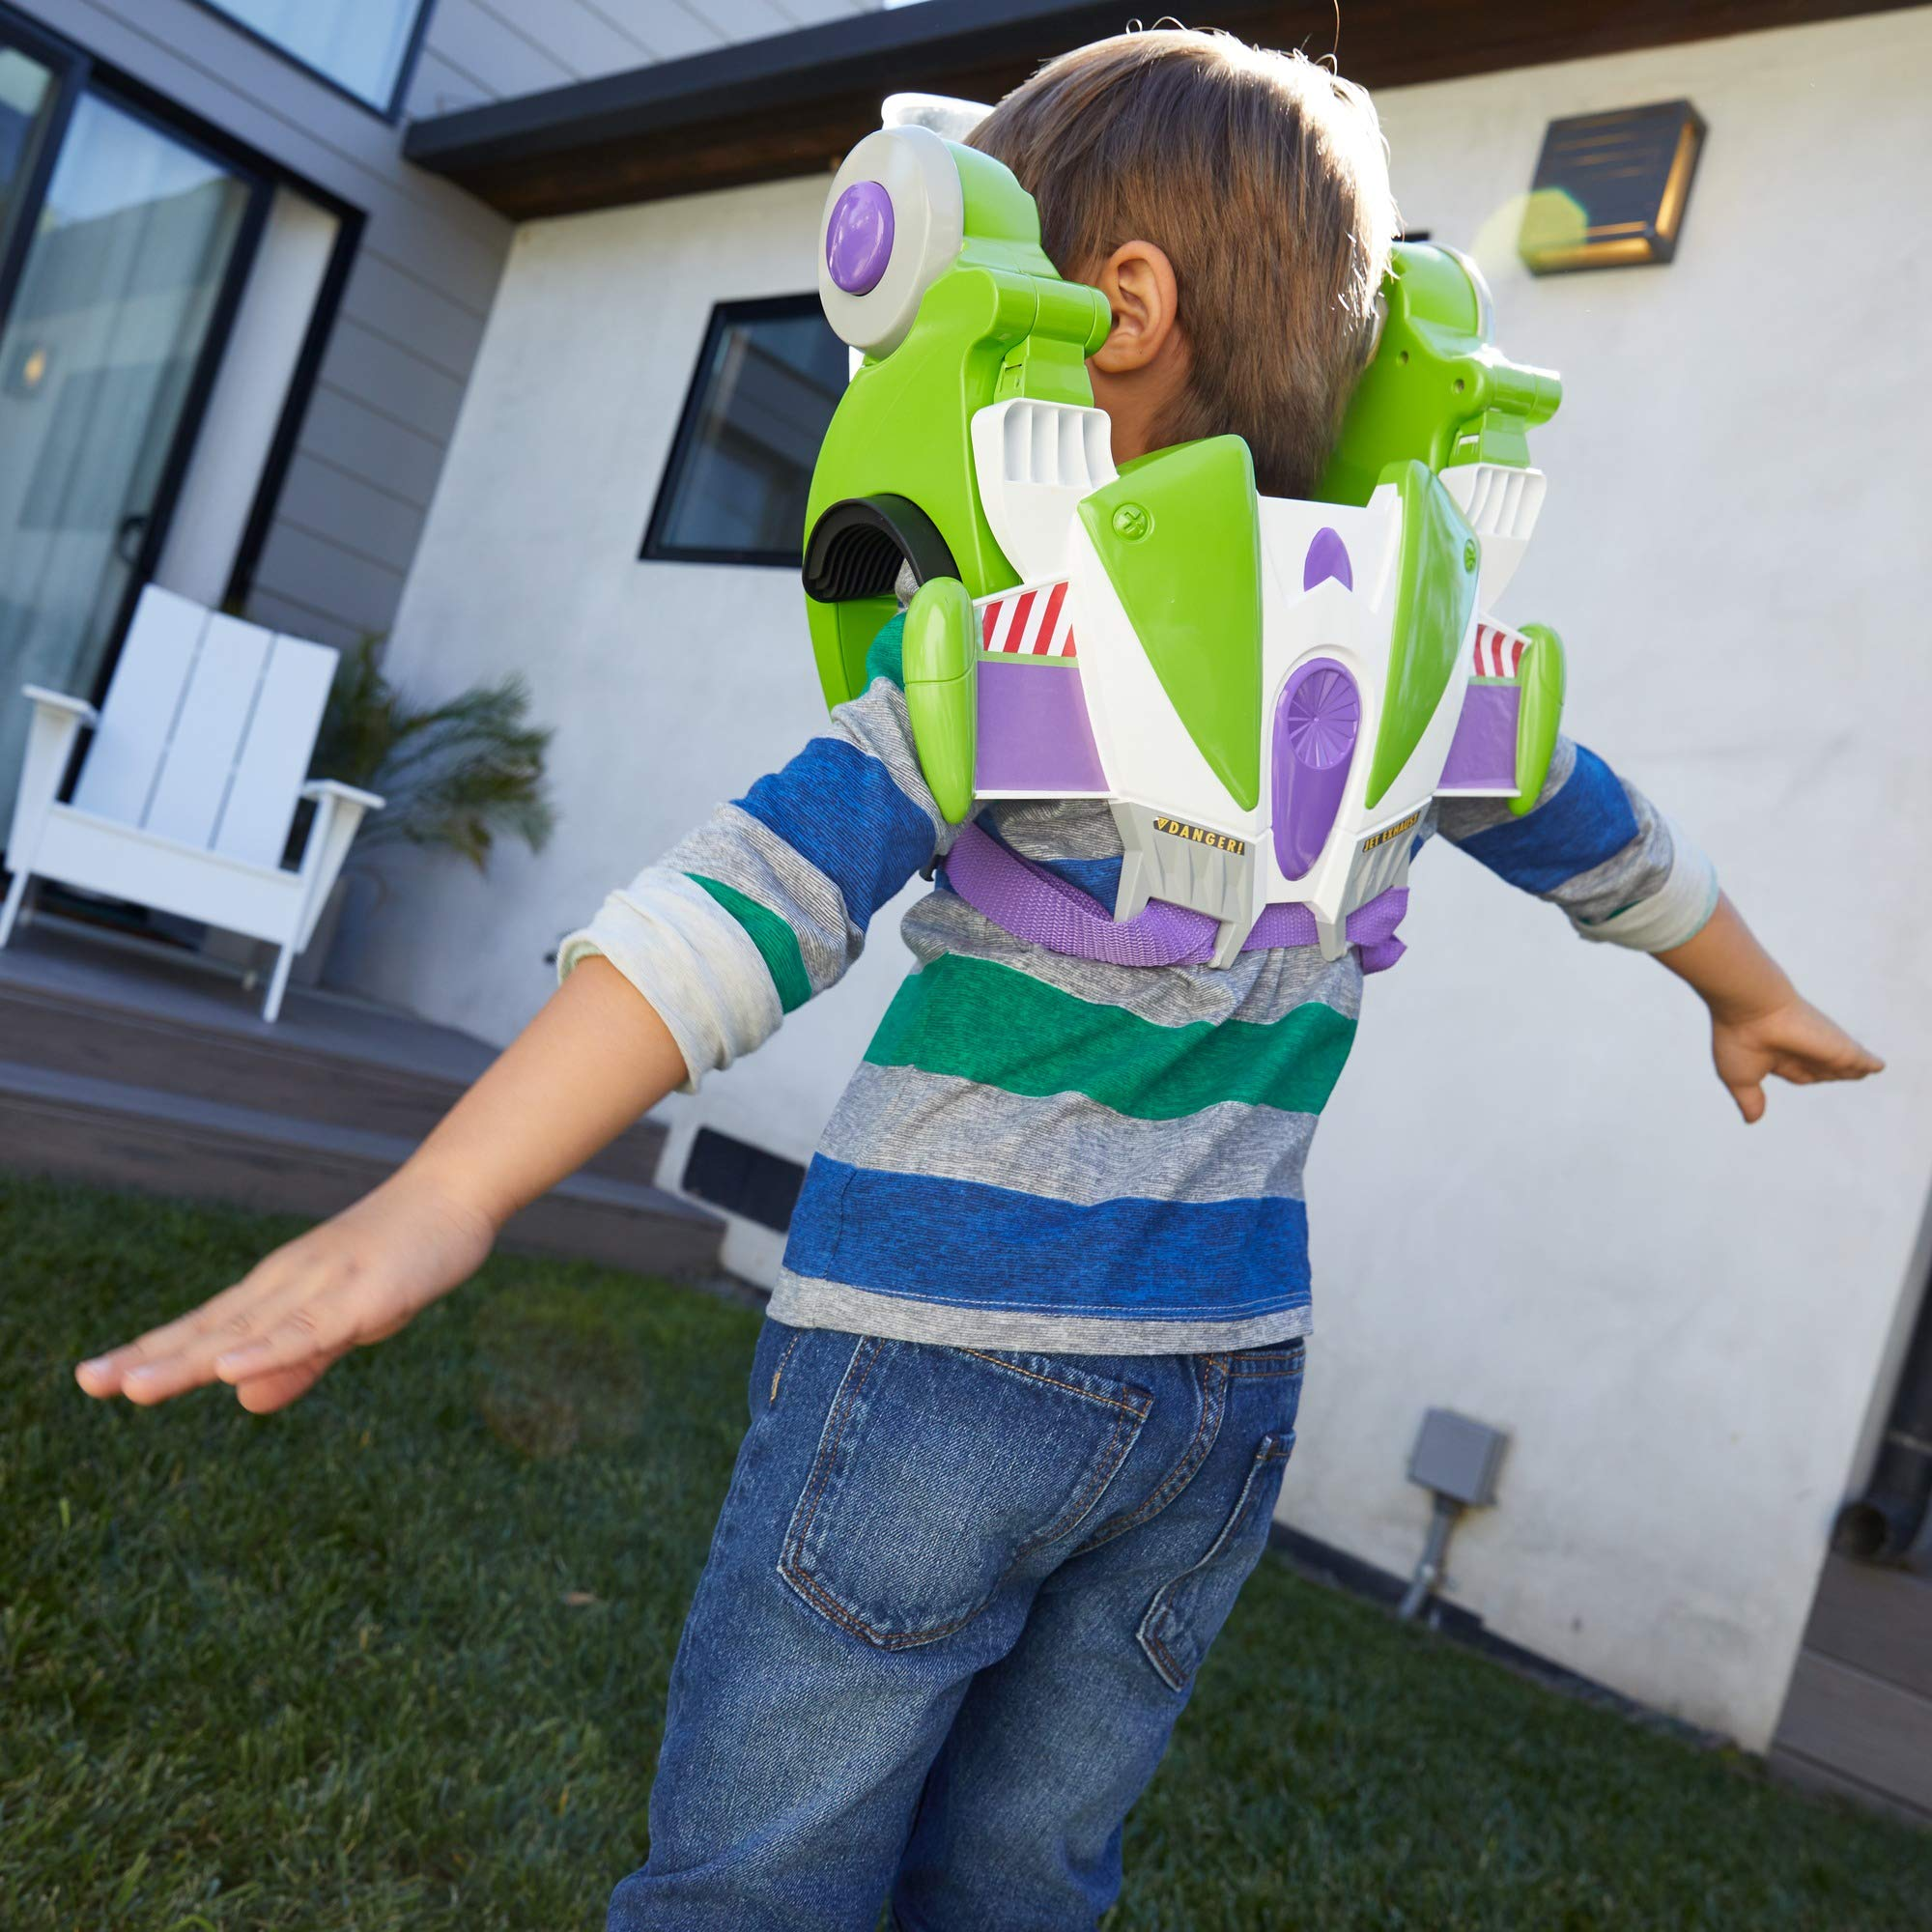 Toy Story Disney Pixar 4 Buzz Lightyear Space Ranger Armor with Jet Pack by Toy Story (Image #9)